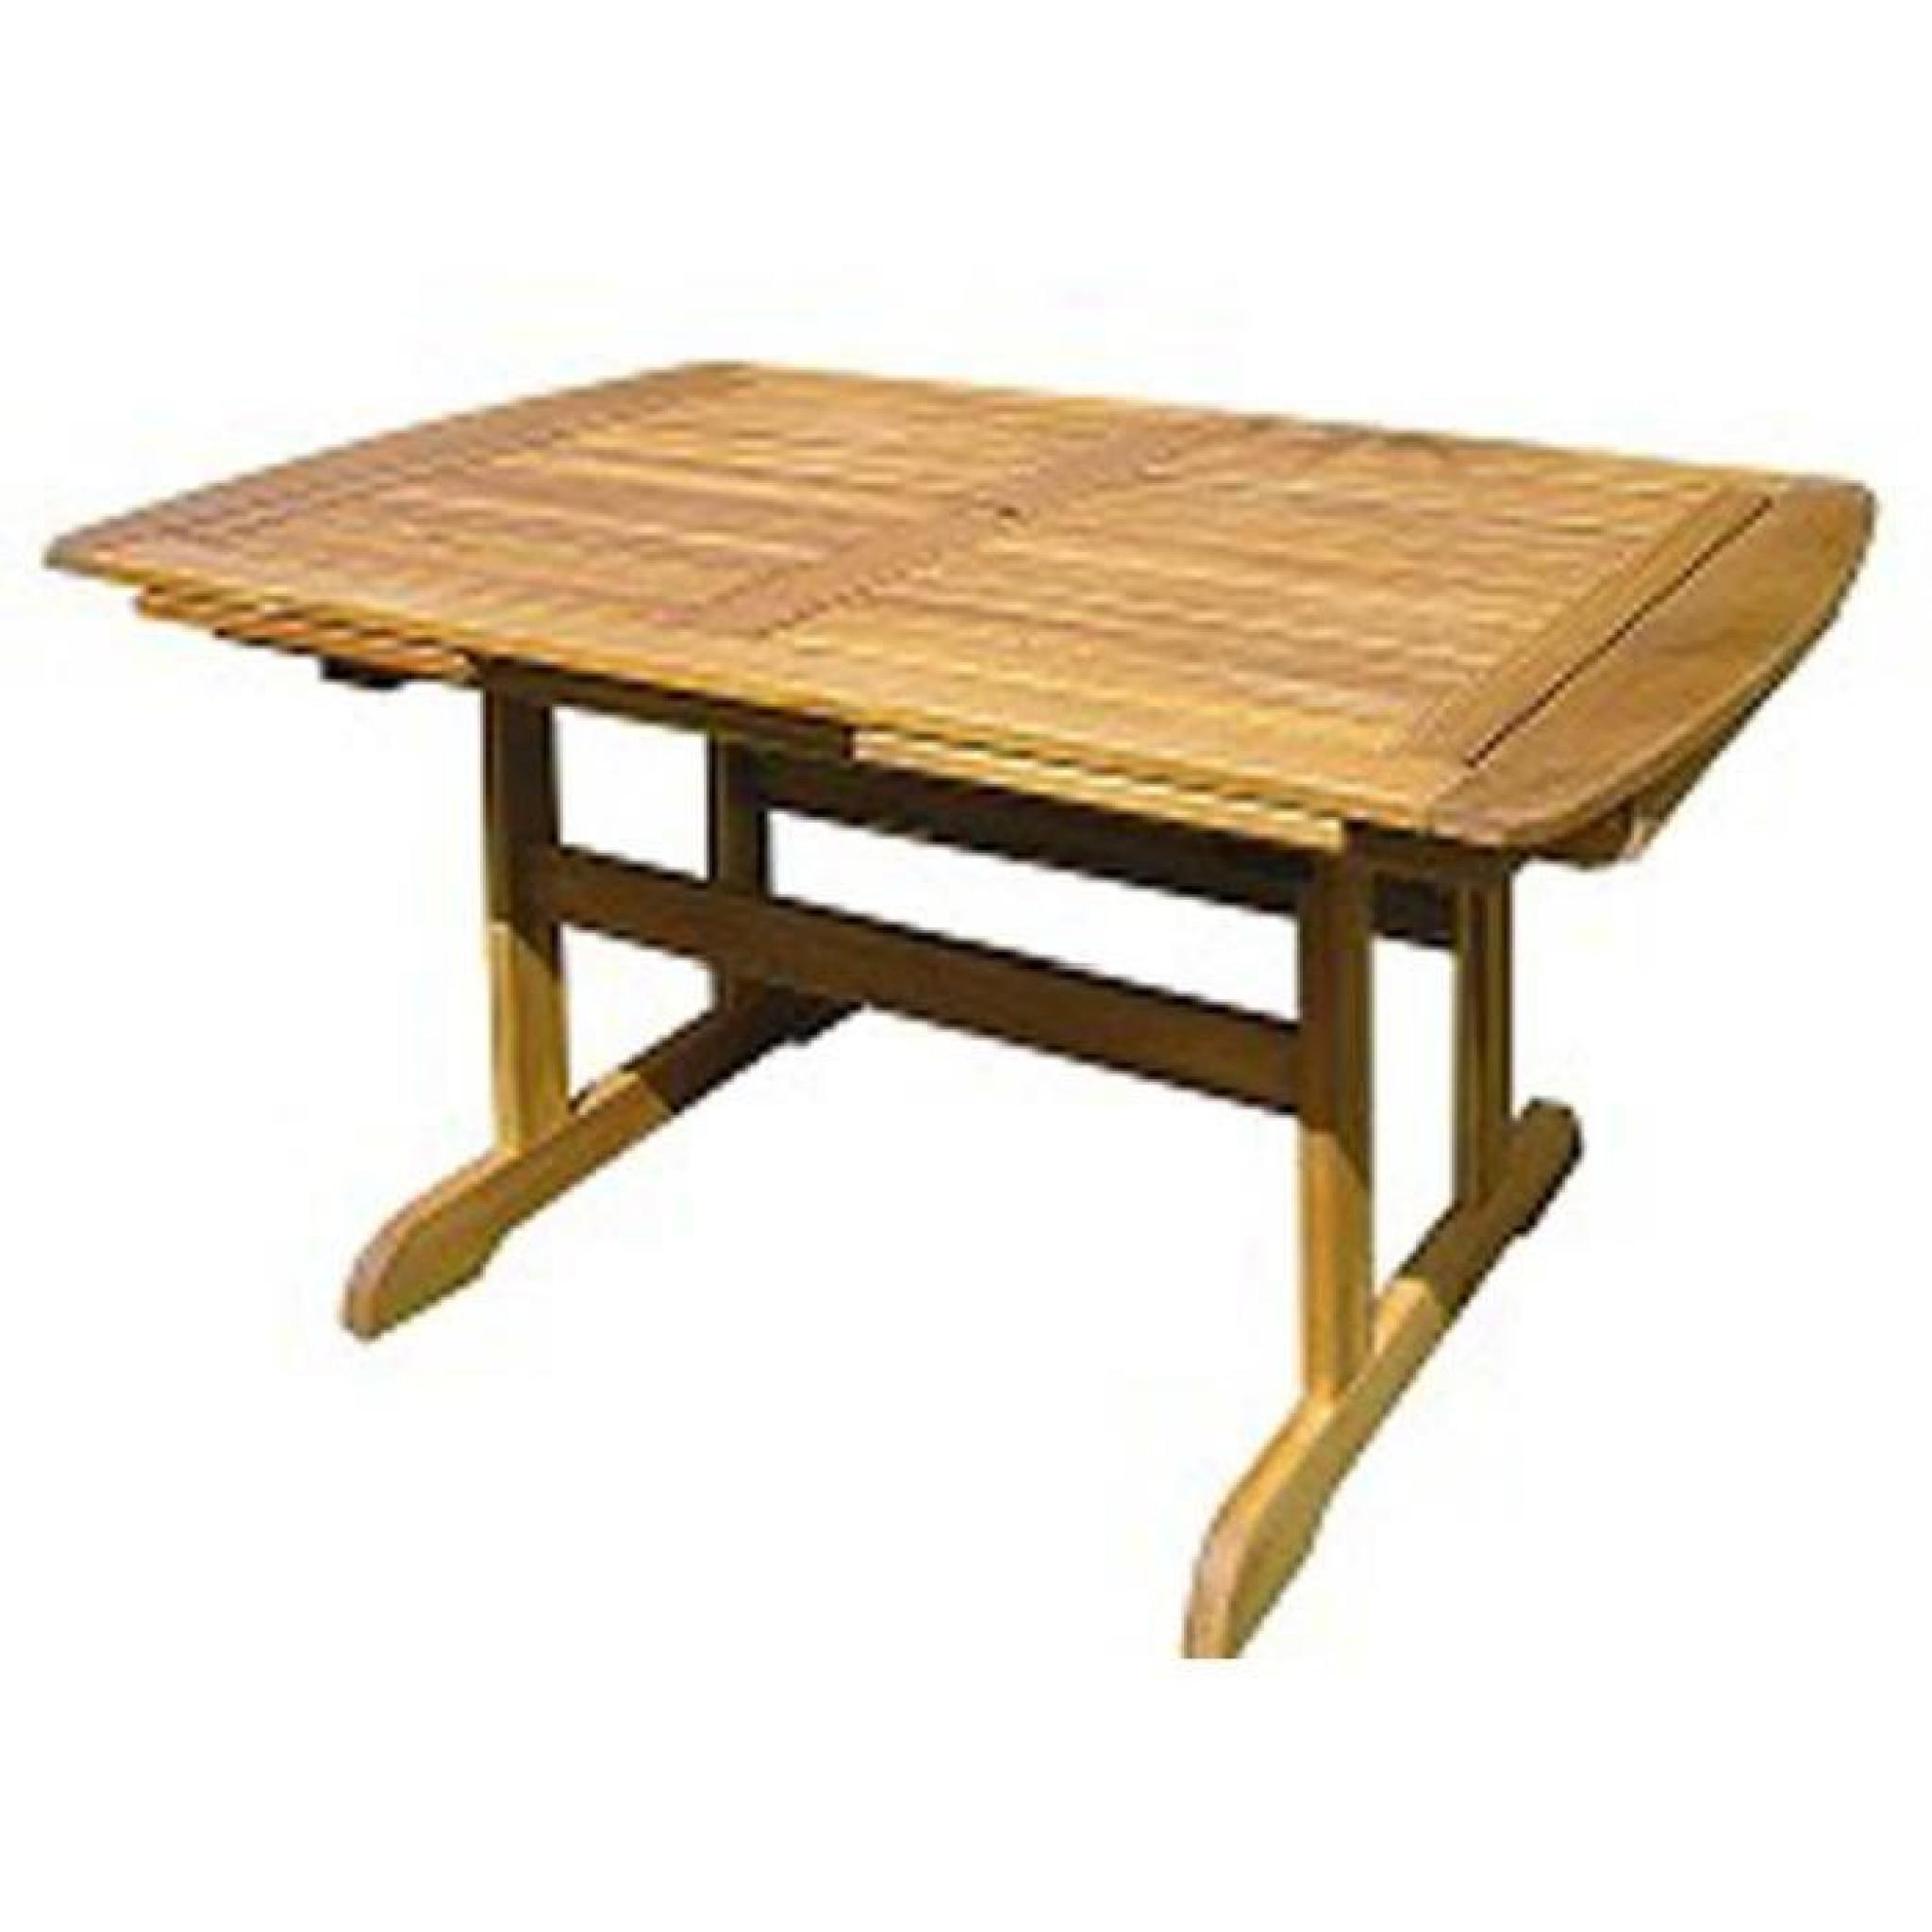 Lot 2 tables rectangulaires extensibles en bois d\'acacia Taylor